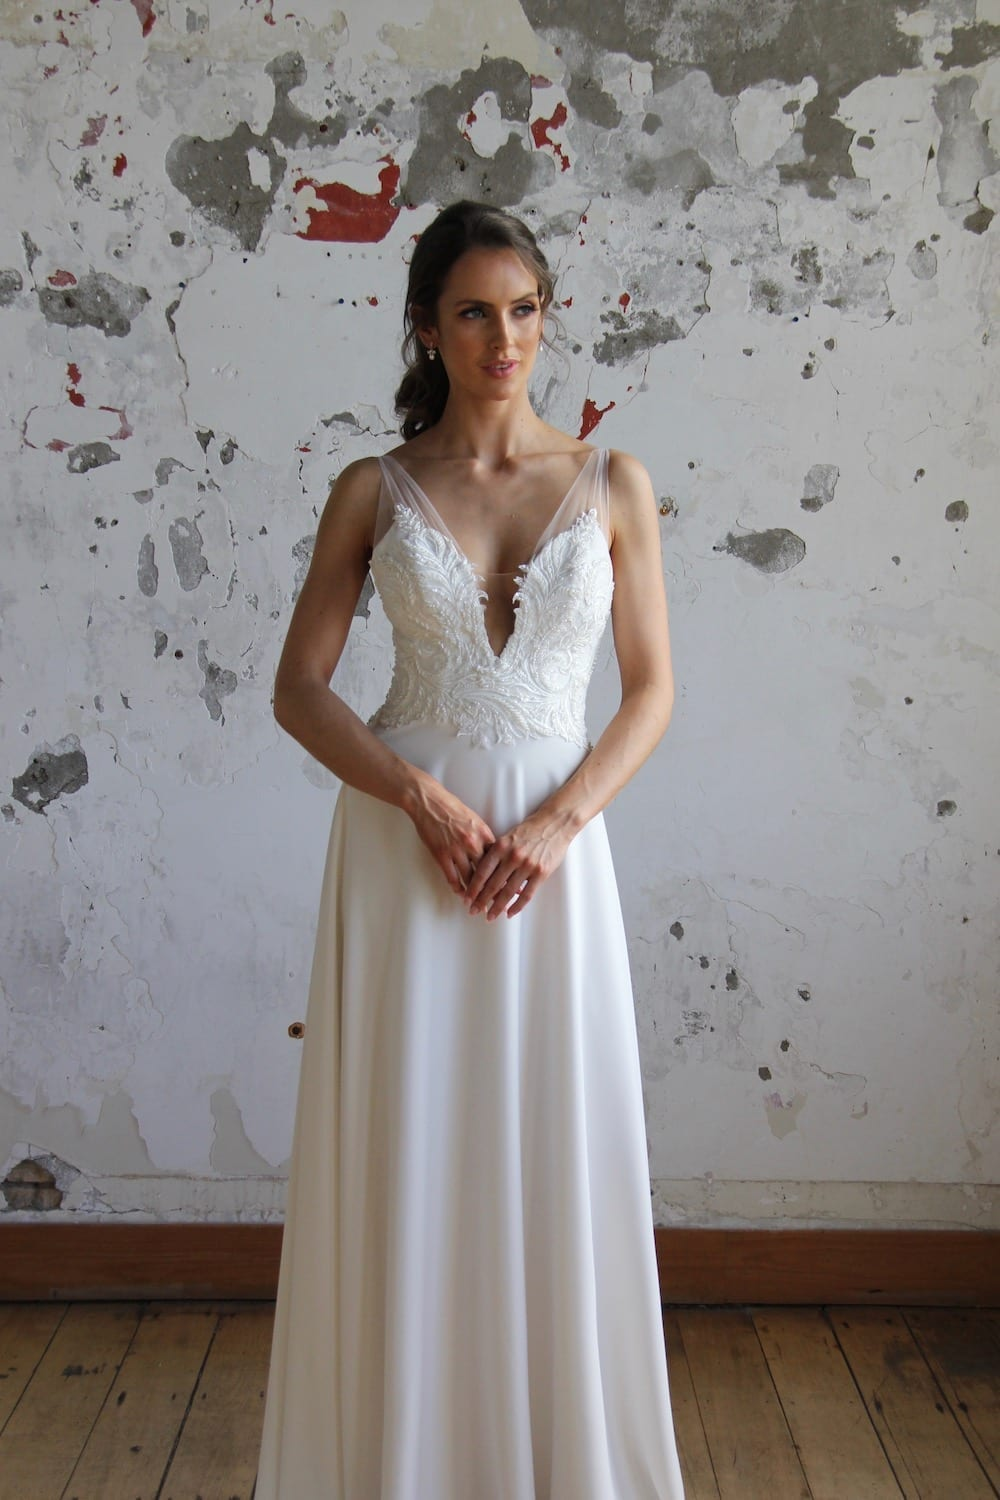 Female model wearing Vinka Design Modern Muse Wedding Dress. In chic warehouse the front detail of a gown with beaded lace and tulle bodice and bridal crepe skirt with train.